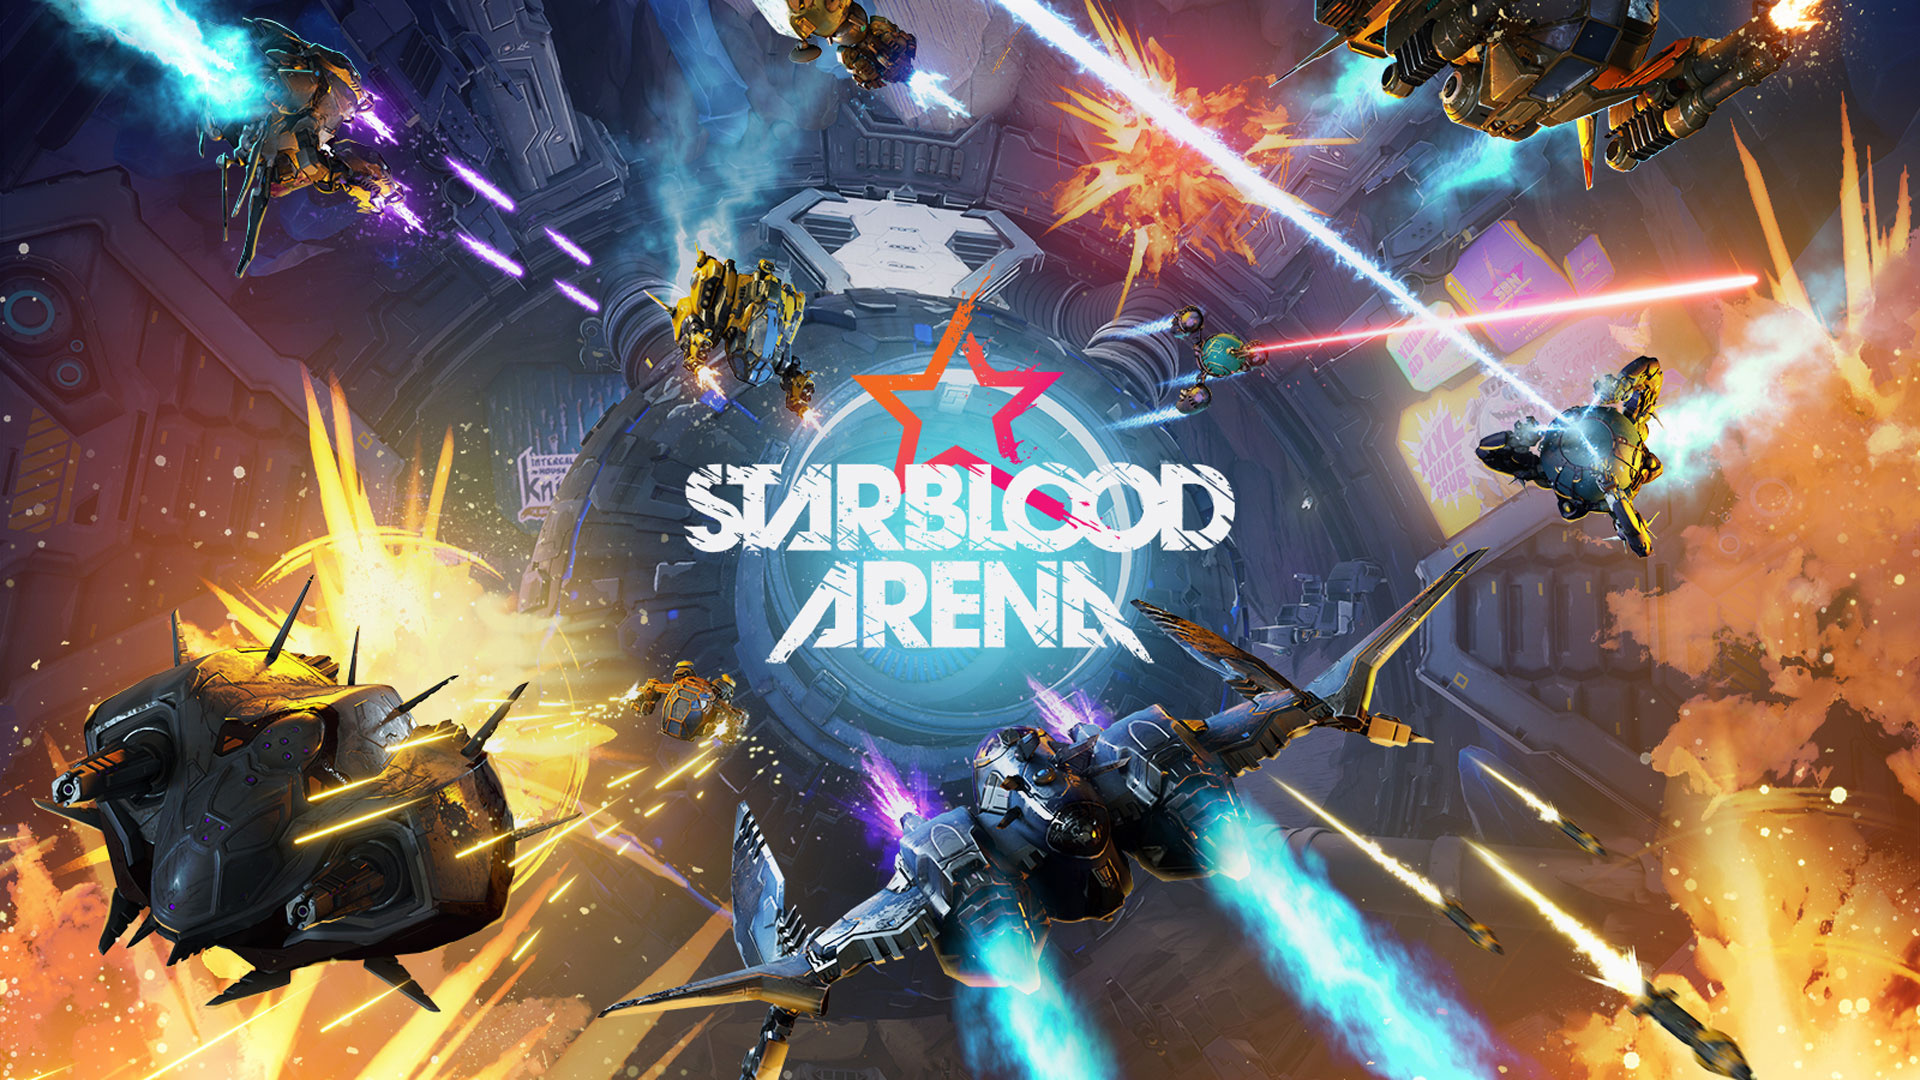 StarBlood Arena No Longer Playable Past July 2019 - Push Square